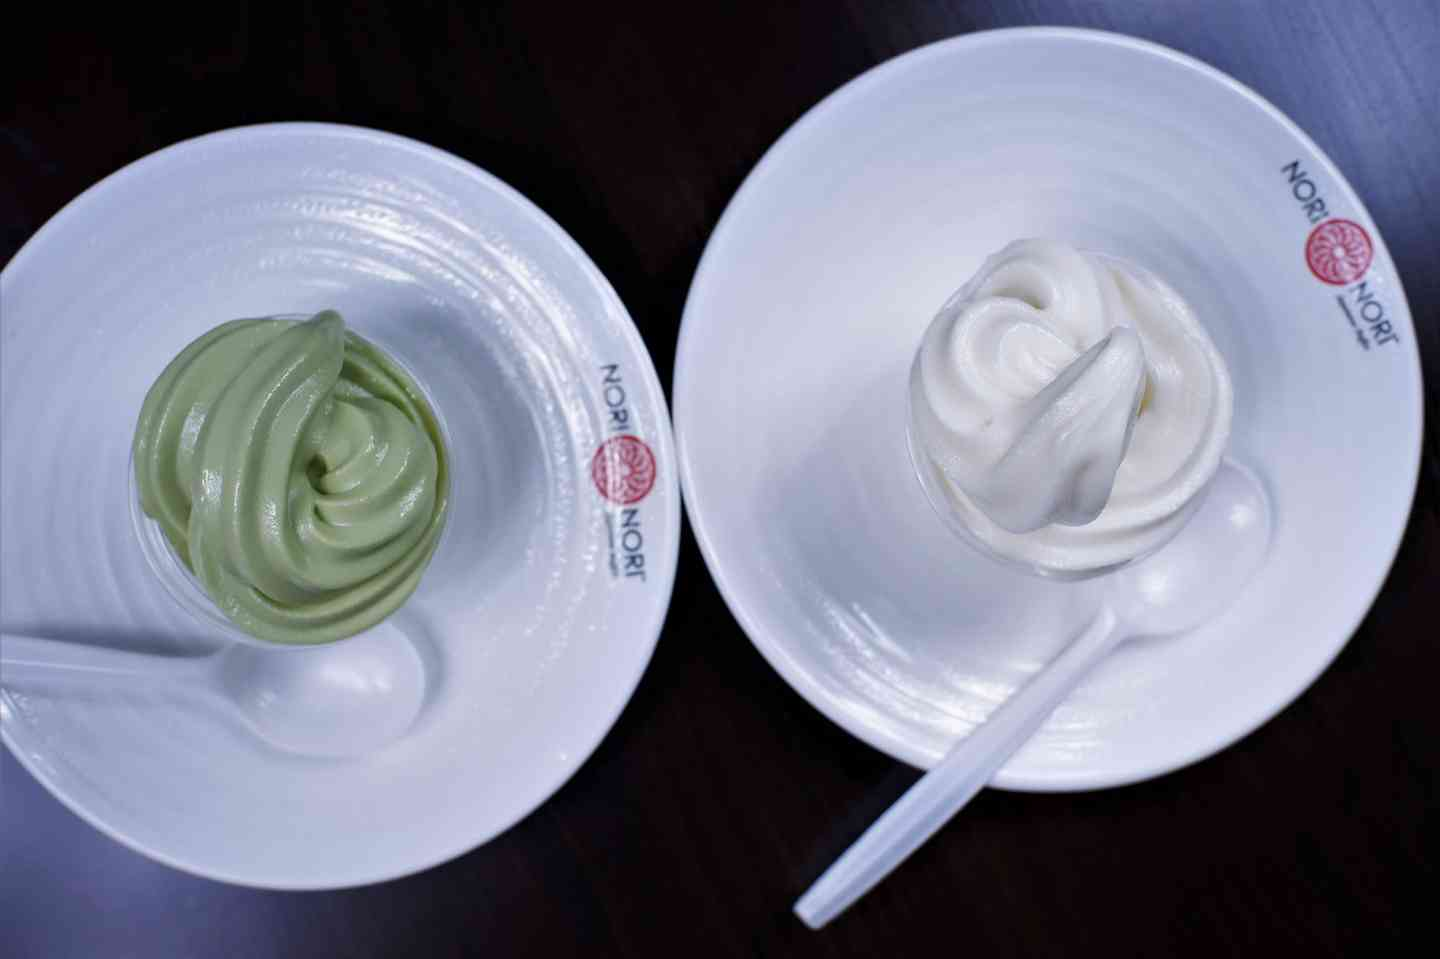 Ice-Cream: Green Tea (Matcha) & Vanilla